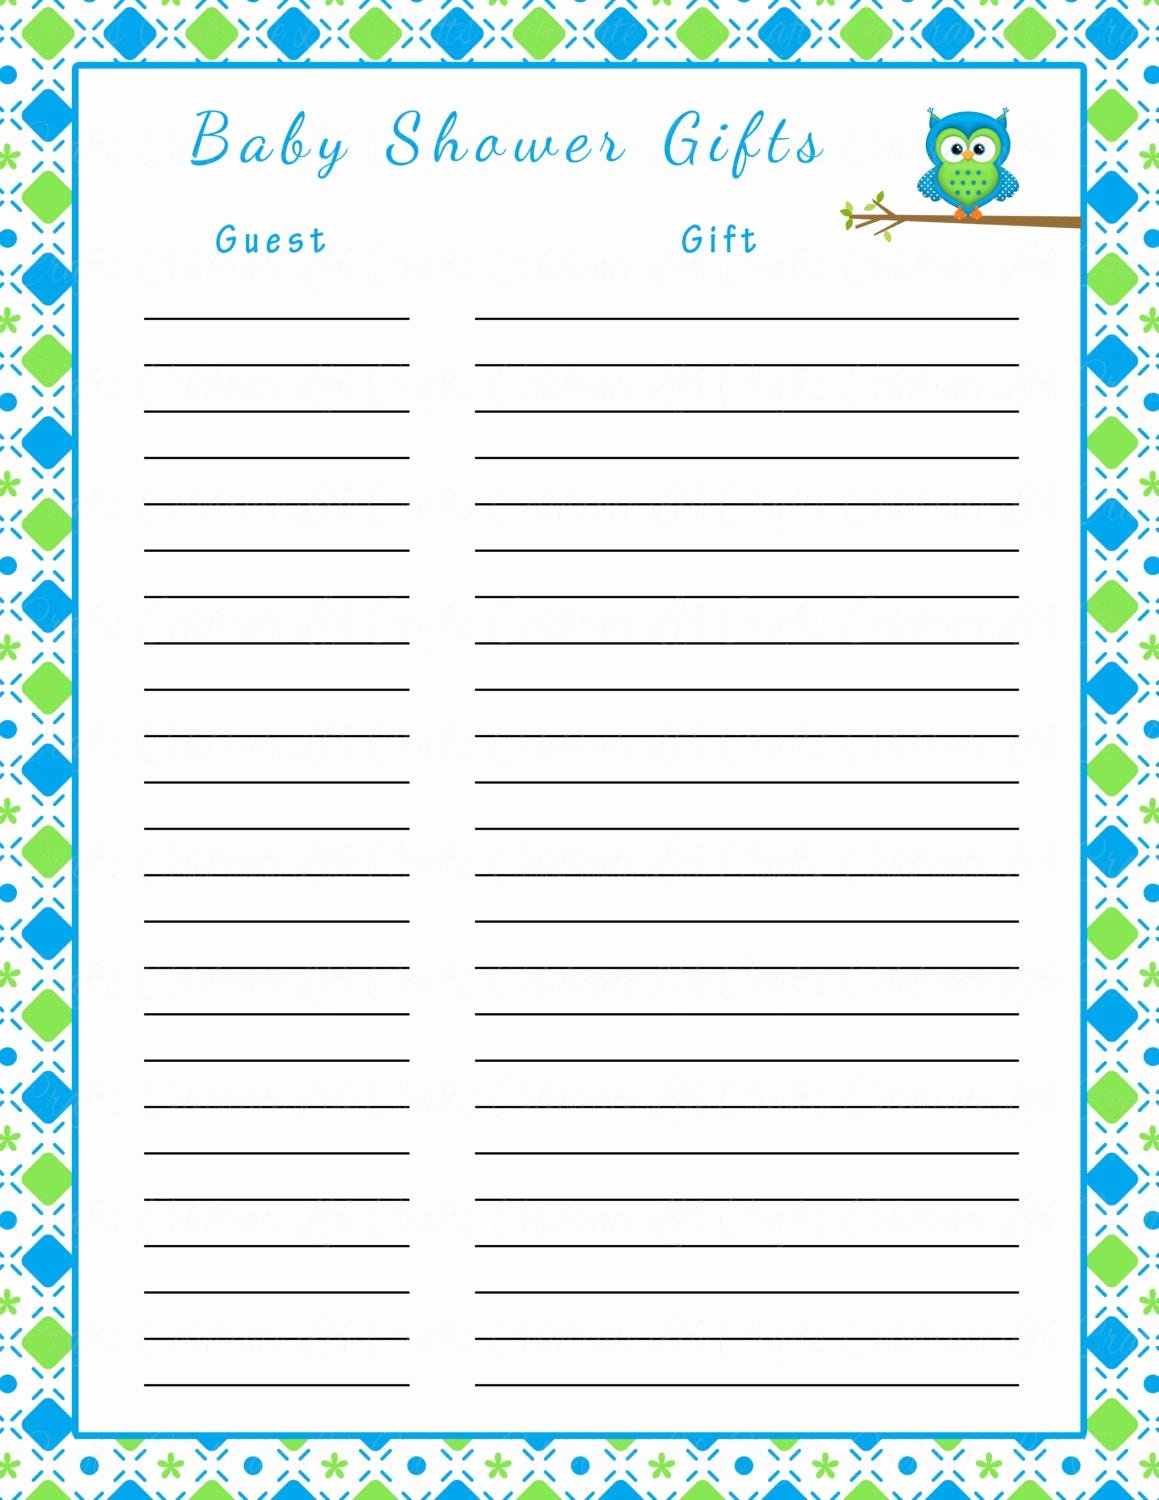 Baby Shower Gift Lists Inspirational Baby Shower Gift List Printable Baby by Celebratelifecrafts